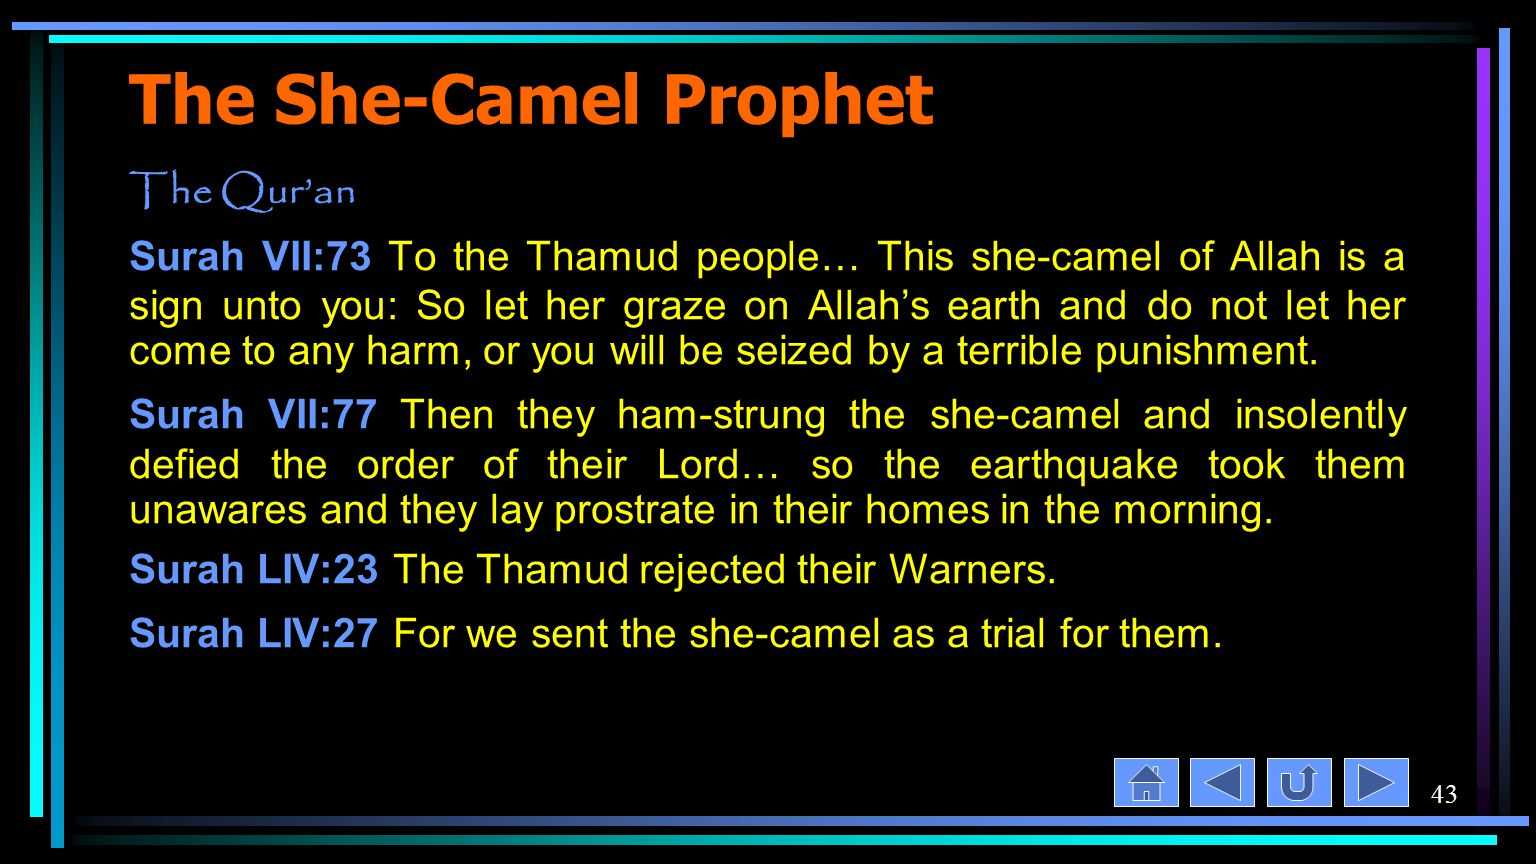 43 The She-Camel Prophet The Qur'an Surah VII:73 To the Thamud people… This she-camel of Allah is a sign unto you: So let her graze on Allah's earth and do not let her come to any harm, or you will be seized by a terrible punishment.